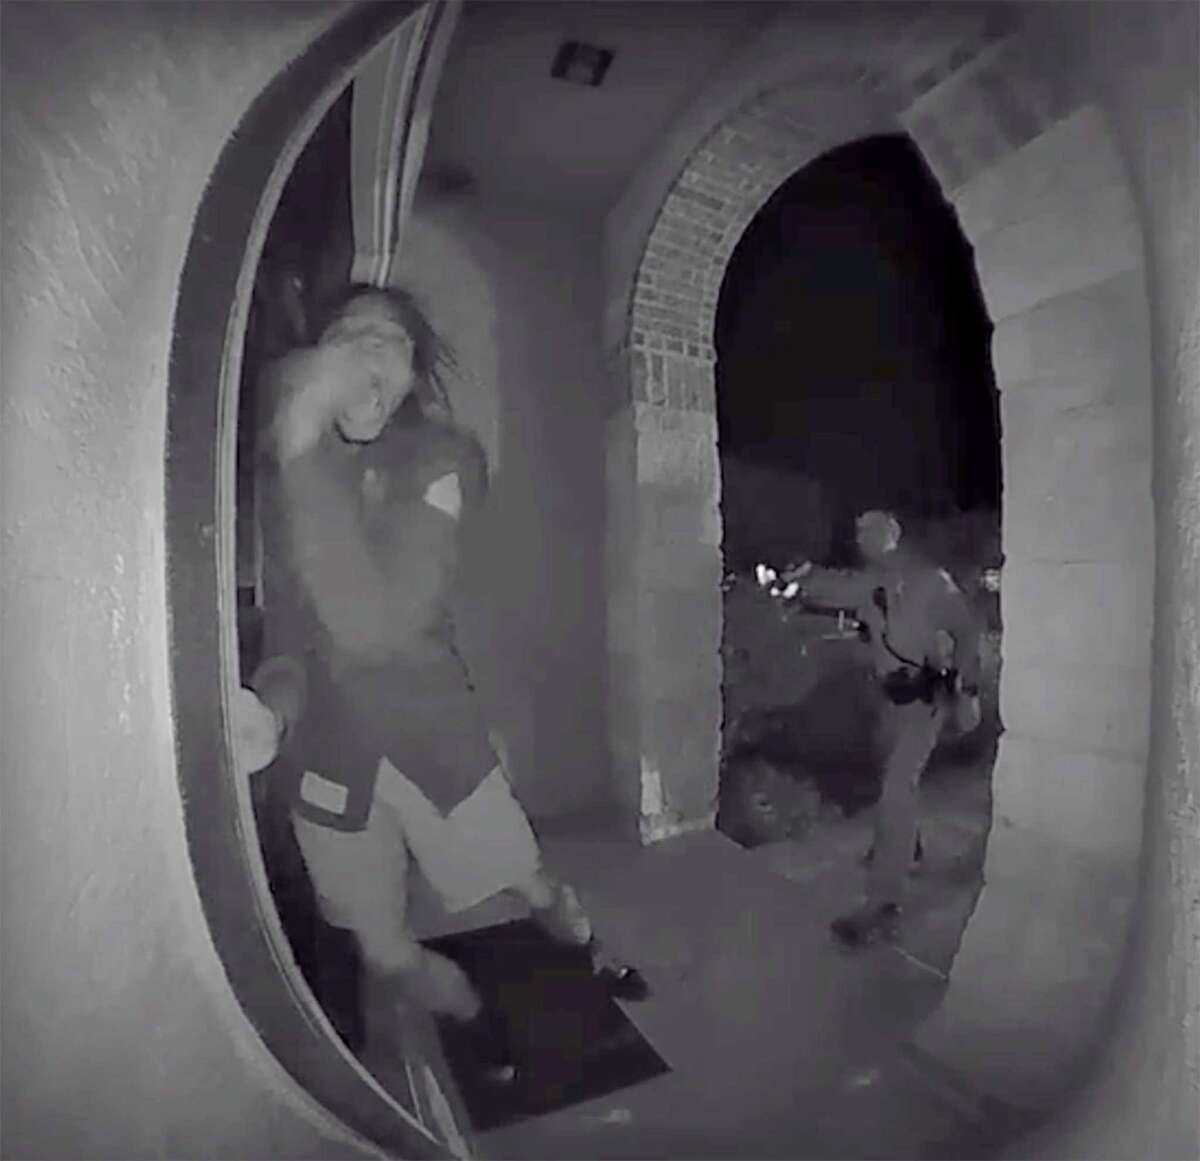 A screen grab from a home surveillance video shows a Schertz police officer using a Taser on Zekee Rayford, 18, as he pounds on the front door of his home while calling for his parents. Police said he ran a red light and failed to pull over.